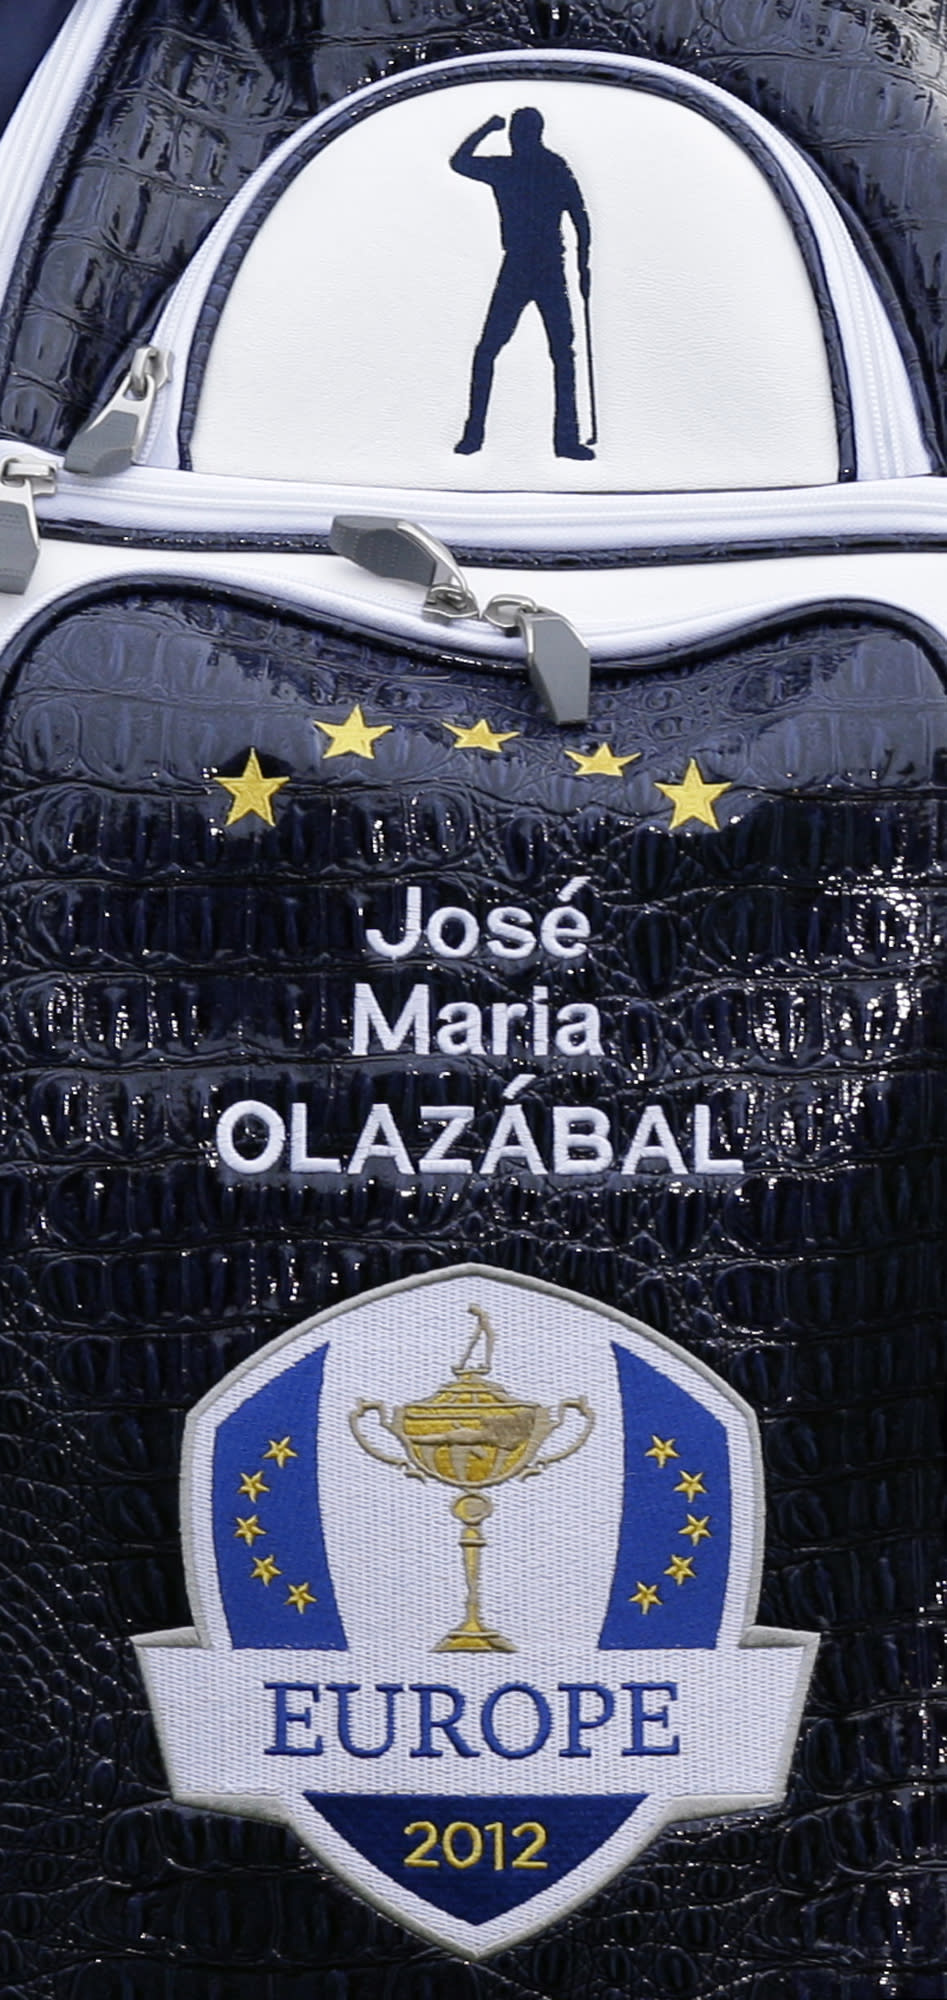 An image of Seve Ballesteros is seen on the bag of European team captain Jose Maria Olazabal during the Ryder Cup PGA golf tournament Tuesday, Sept. 25, 2012, at the Medinah Country Club in Medinah, Ill. (AP Photo/David J. Phillip)